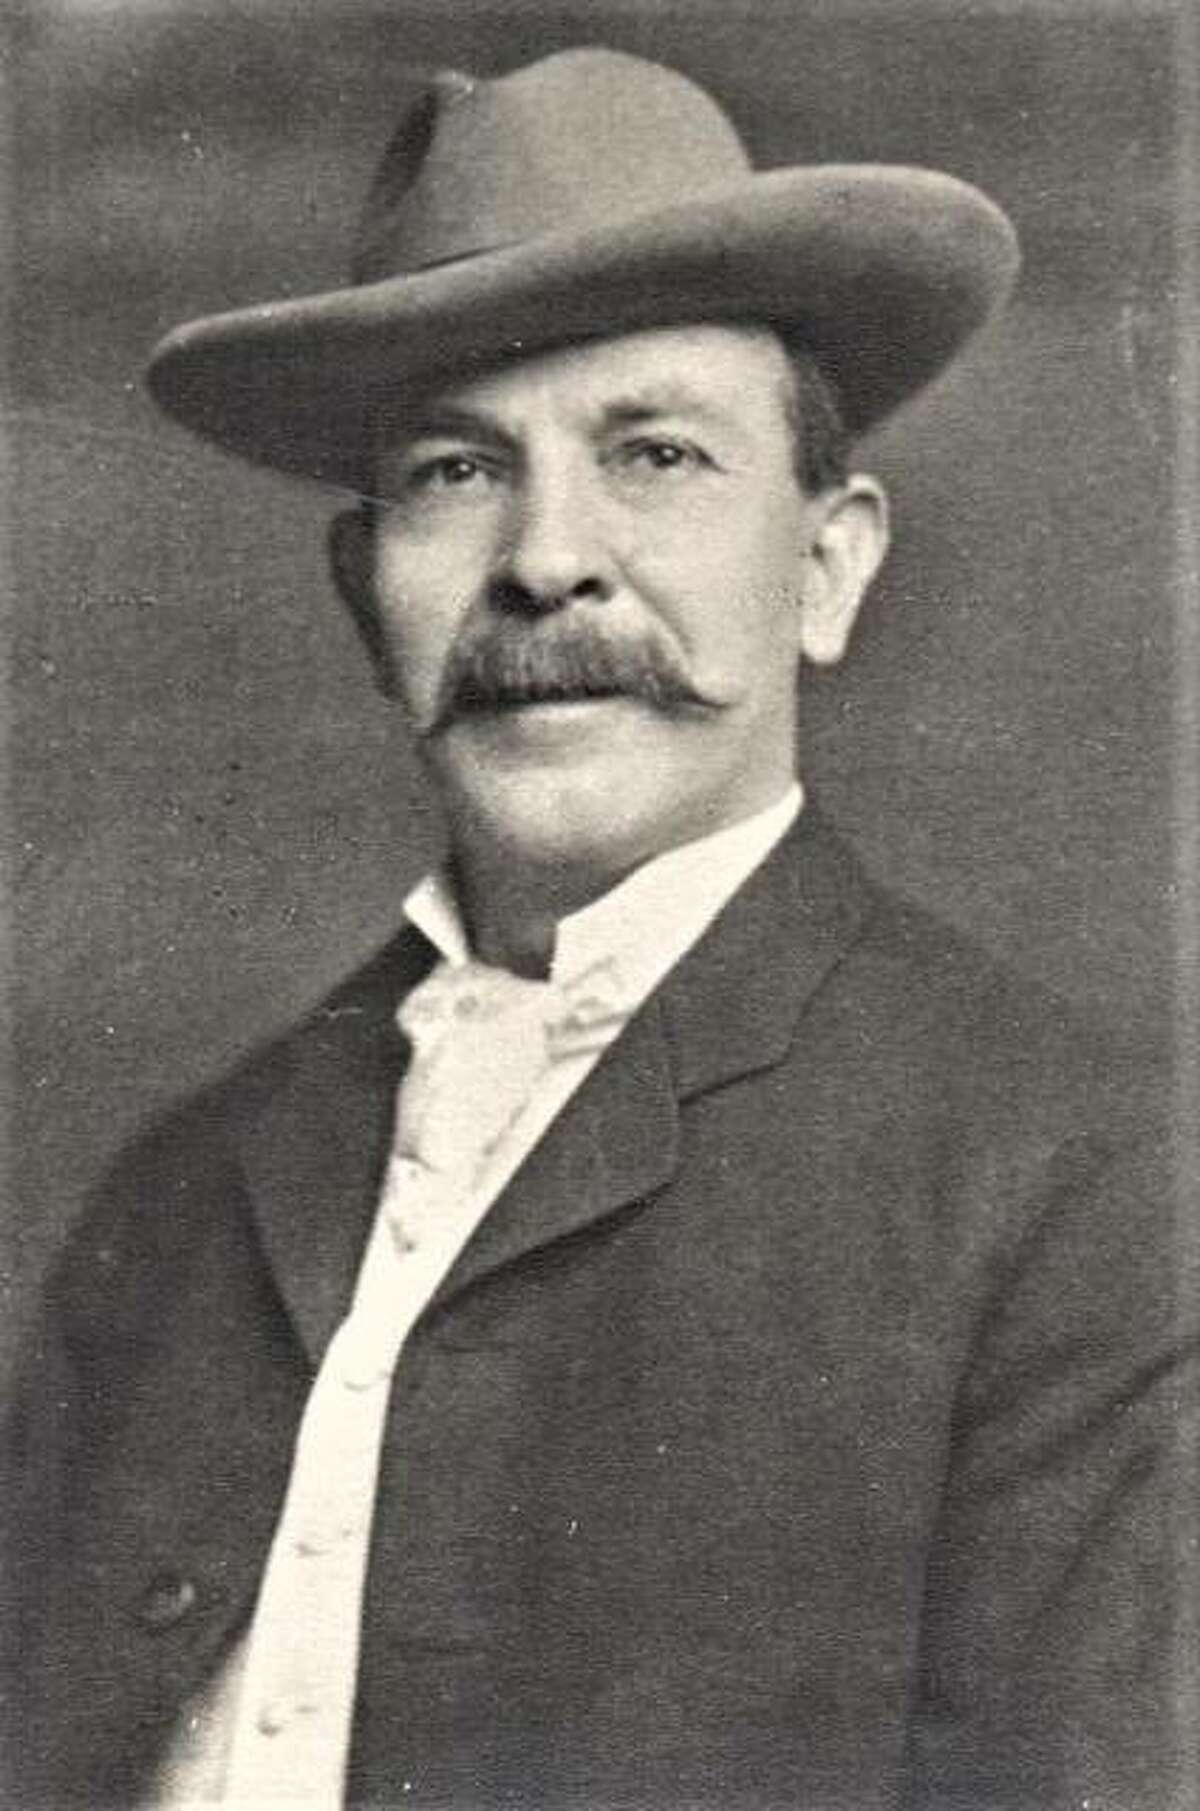 Julius Koenig (pictured) hired noted Alton architect Lucas Pfeiffenberg to build his house at the corner of E. 4th and Oaks in the Hunterstown section of Alton in 1897.